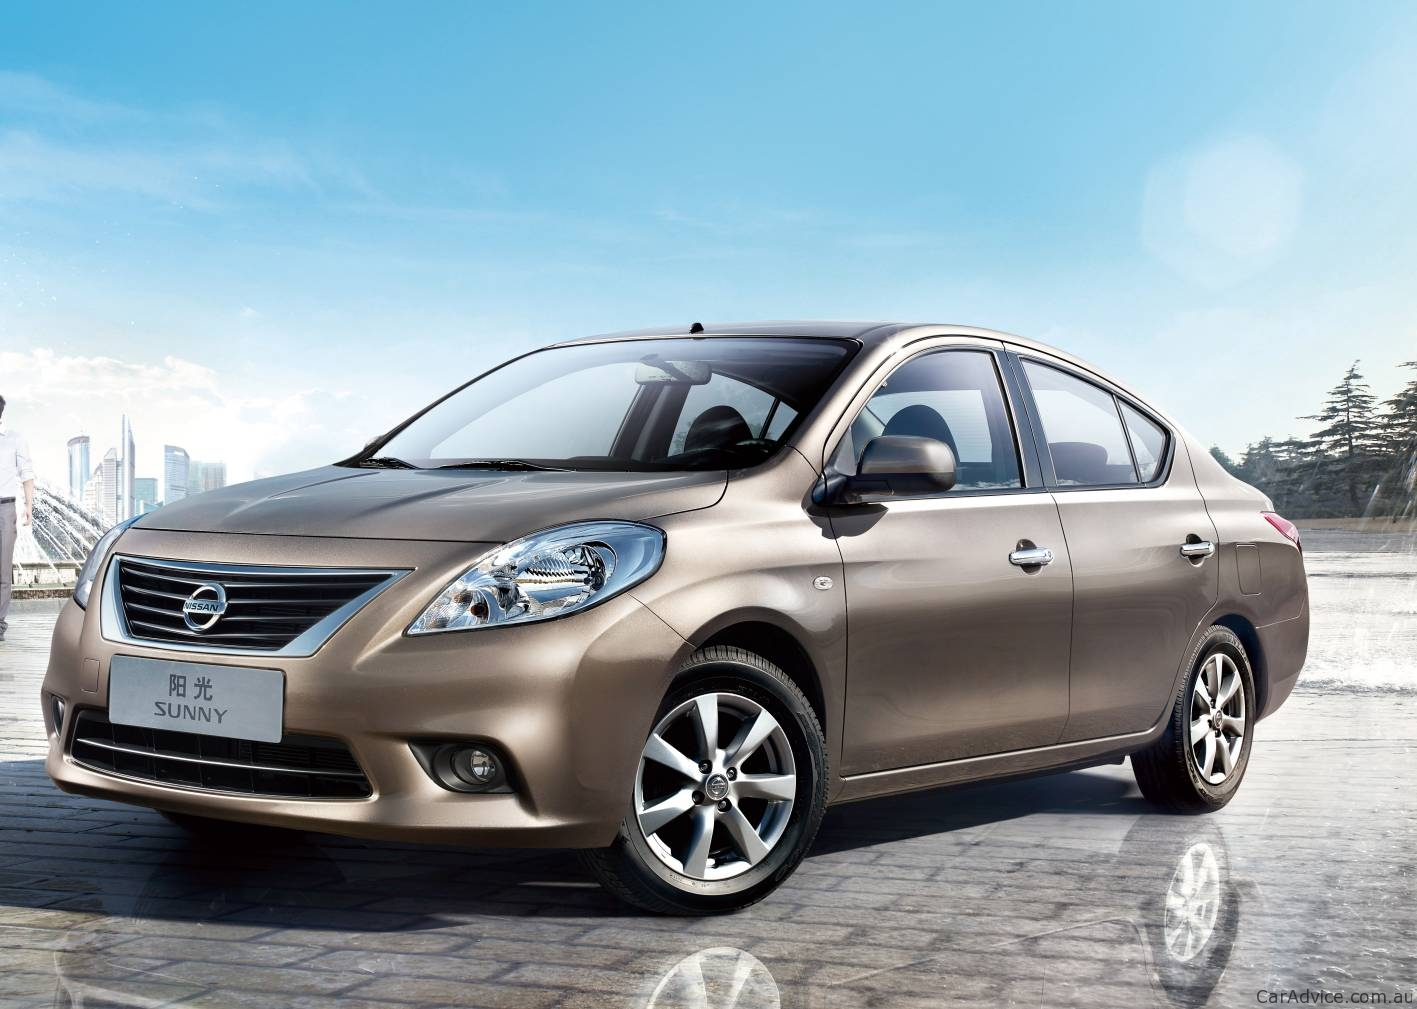 new car releases australia 2013Nissan Sunny global small car coming to Australia  Photos 1 of 5